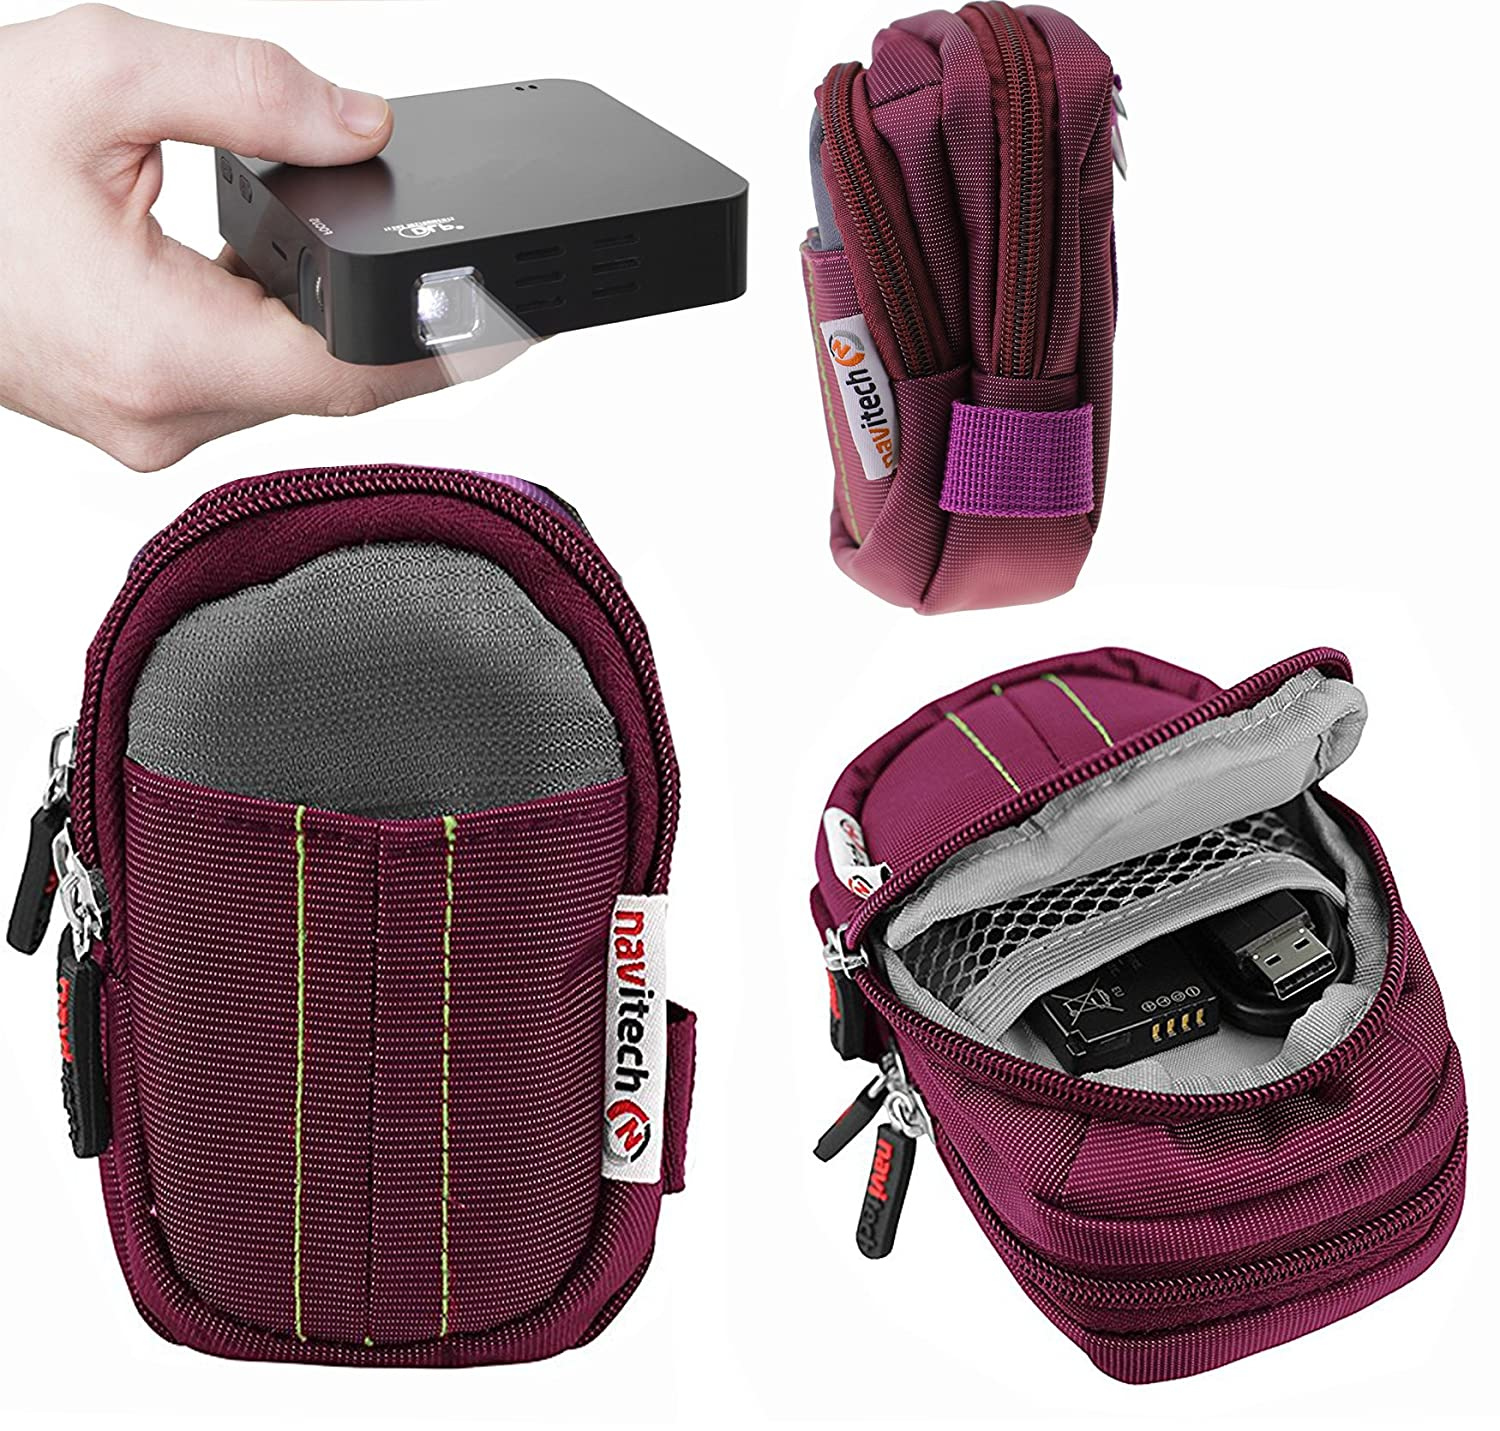 Navitech Purple Protective Portable Handheld Pocket Projector Carrying Case and Travel Bag for the RIF6 Cube 2-inch + accessories